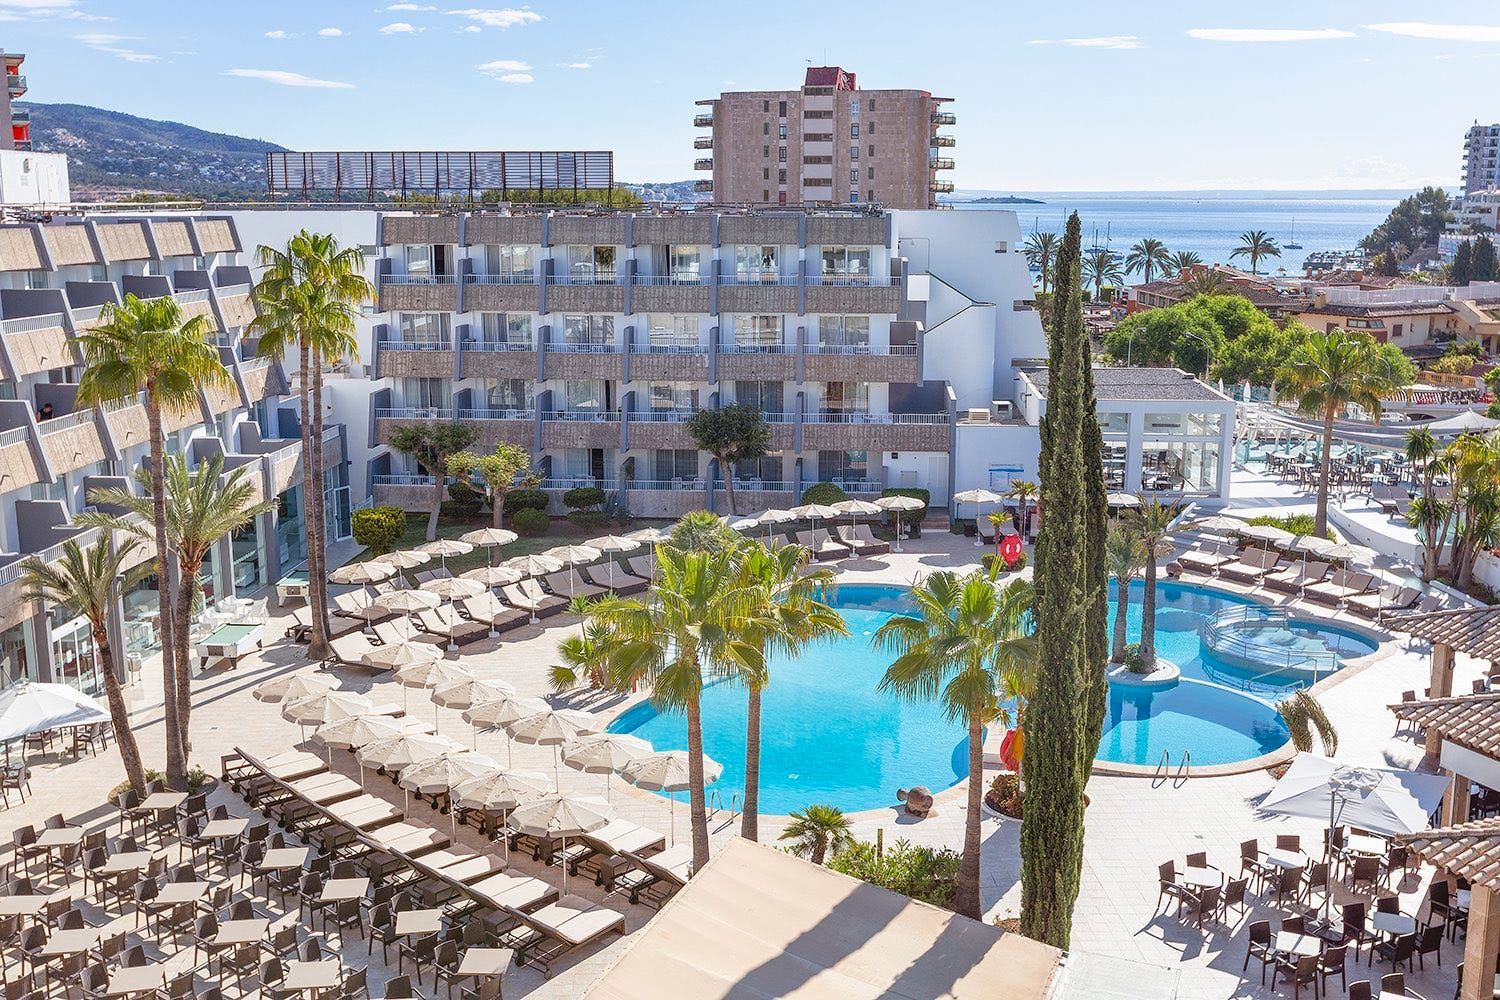 Beautiful 5-star hotel on the seafront in Spain